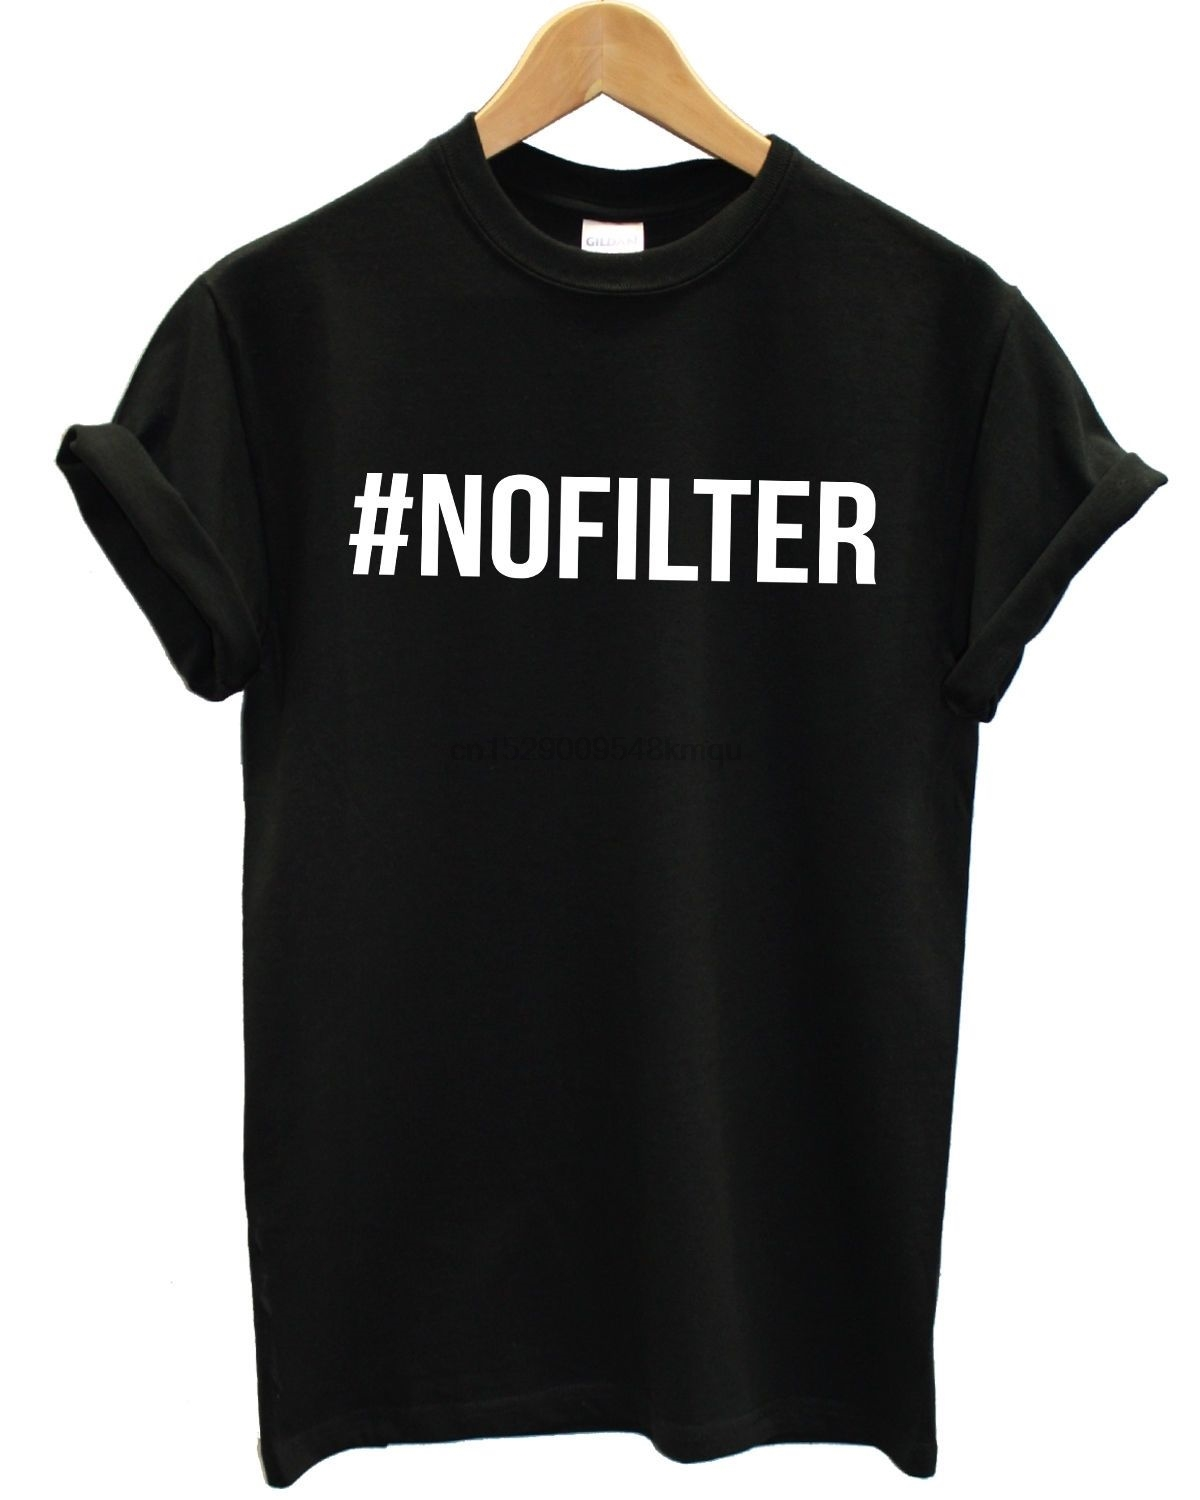 #NOFILTER T Shirt Tee Top Baggy No Filter Hashtag Selfie Mens Womens Girls Gift Print T-shirtHip Hop Tee ShirtNEW ARRIVAL tees